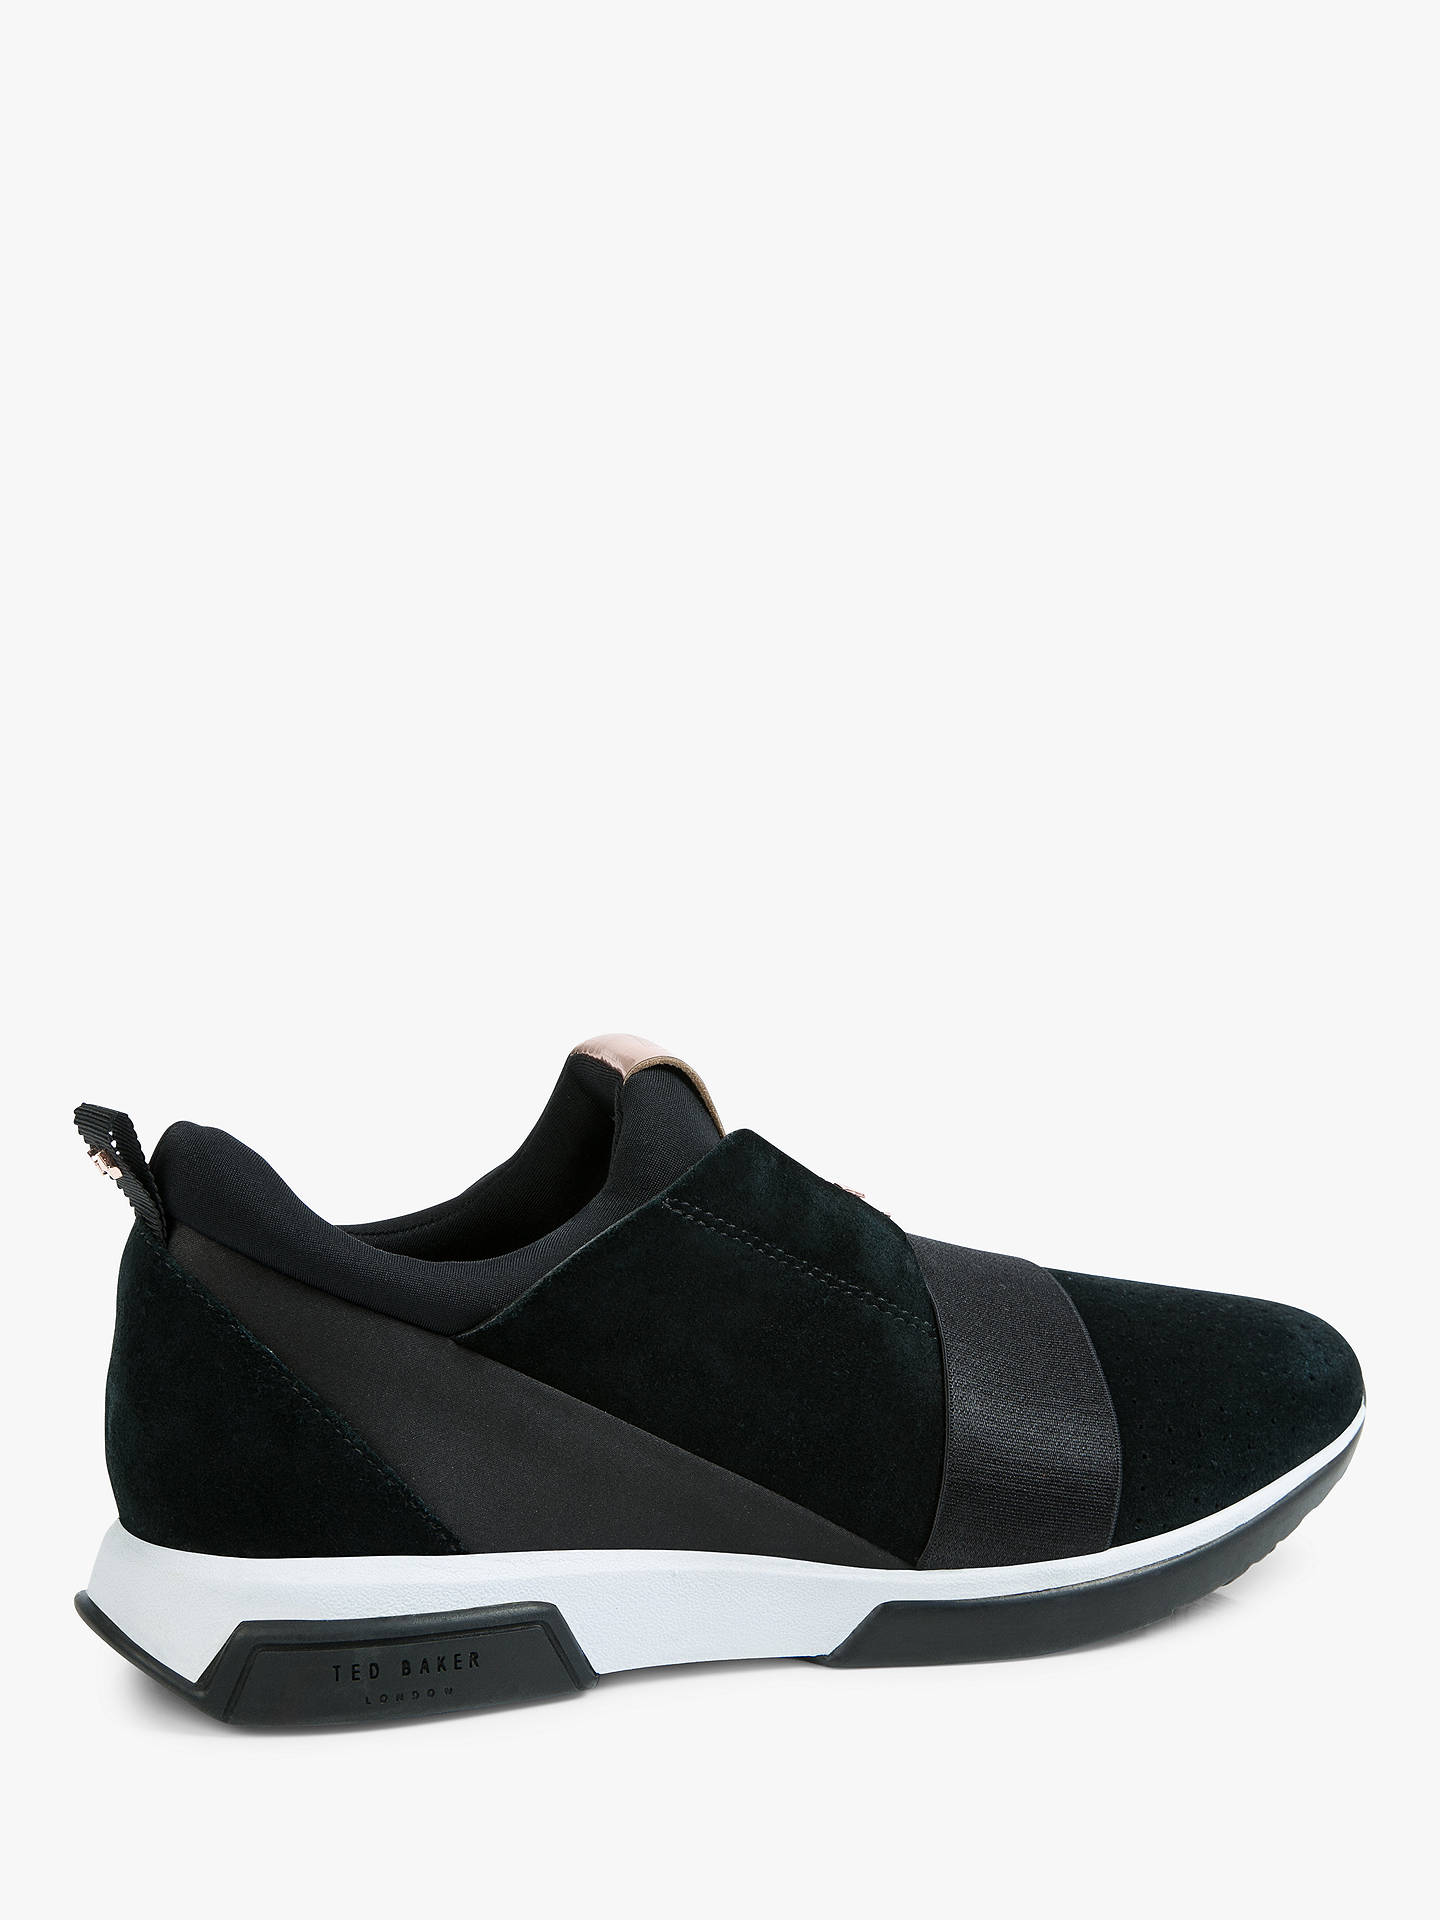 BuyTed Baker Cepas 2 Lace Up Trainers, Black Suede, 3 Online at johnlewis.com